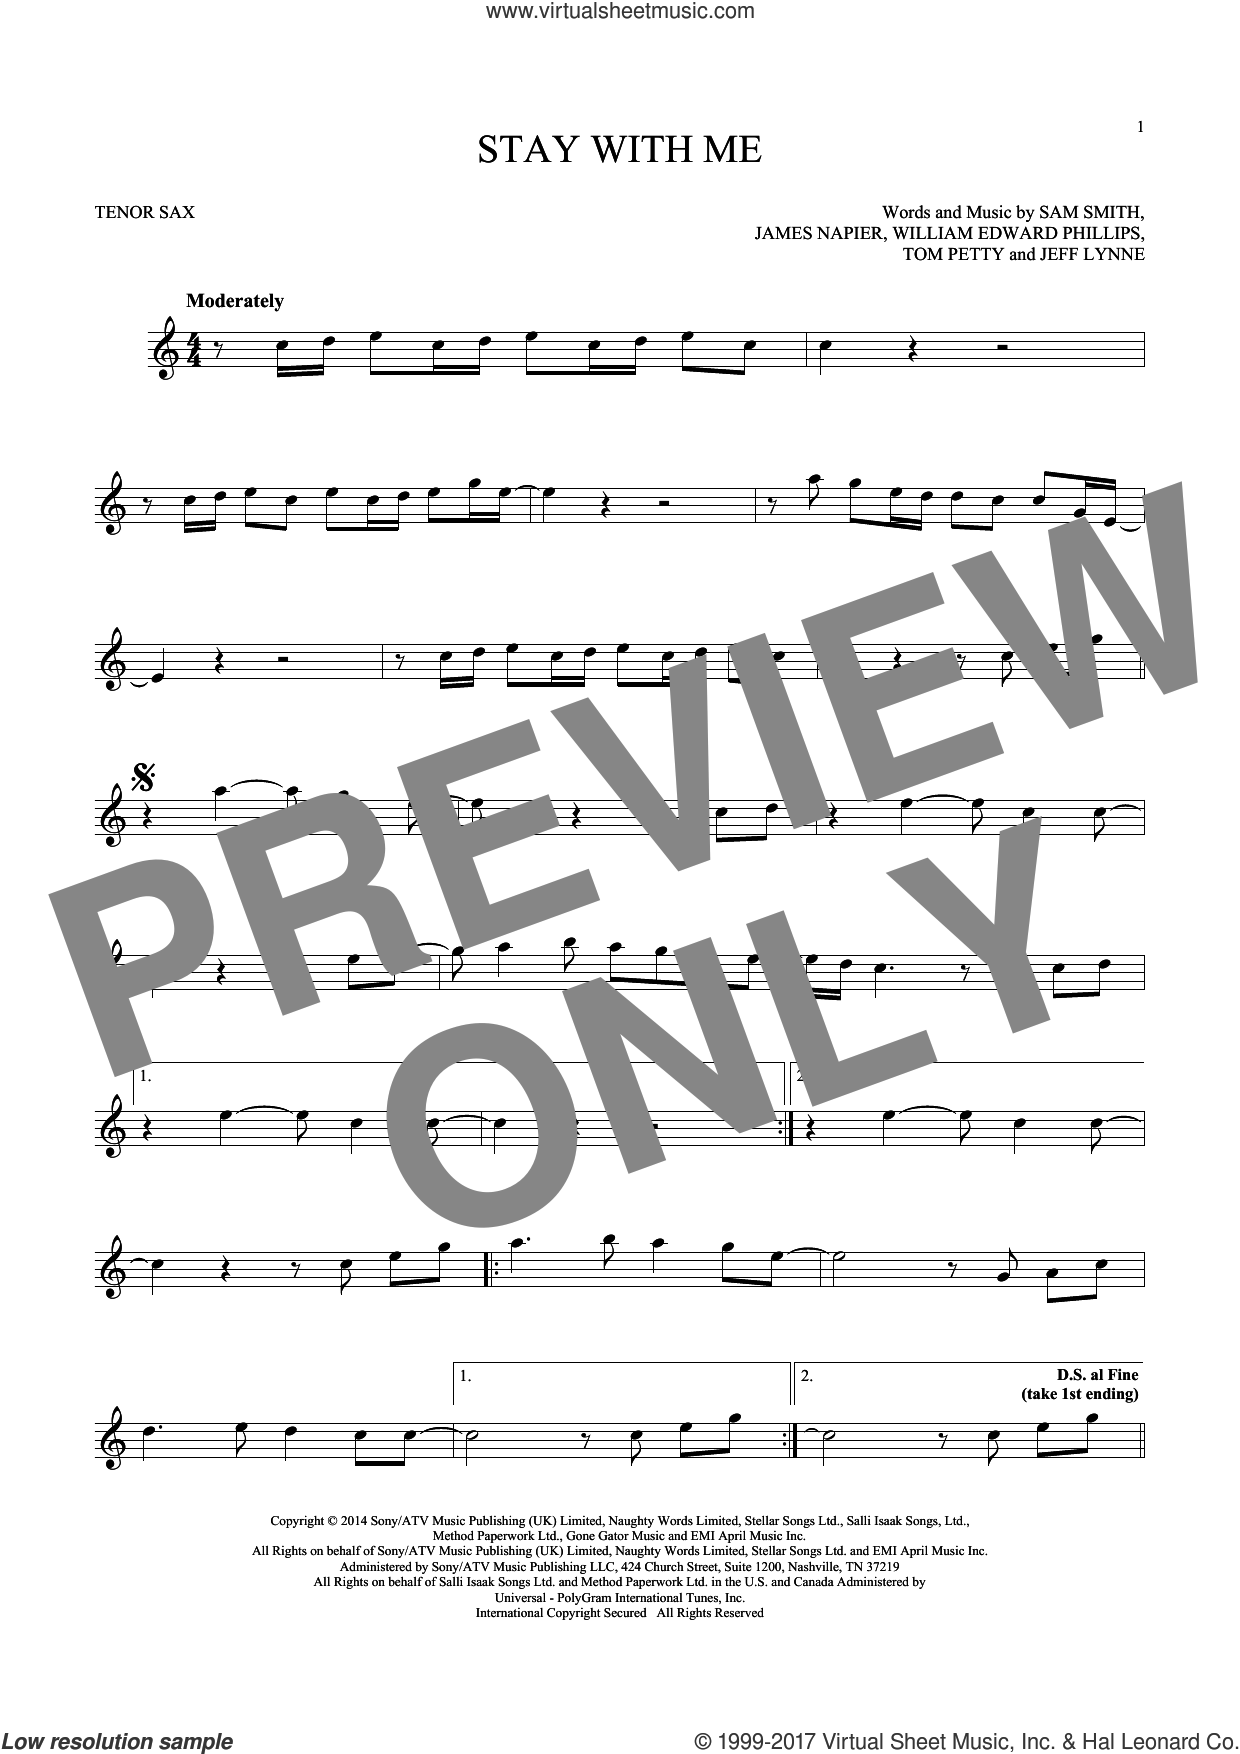 Stay With Me sheet music for tenor saxophone solo by Sam Smith, James Napier, Jeff Lynne, Tom Petty and William Edward Phillips, intermediate skill level